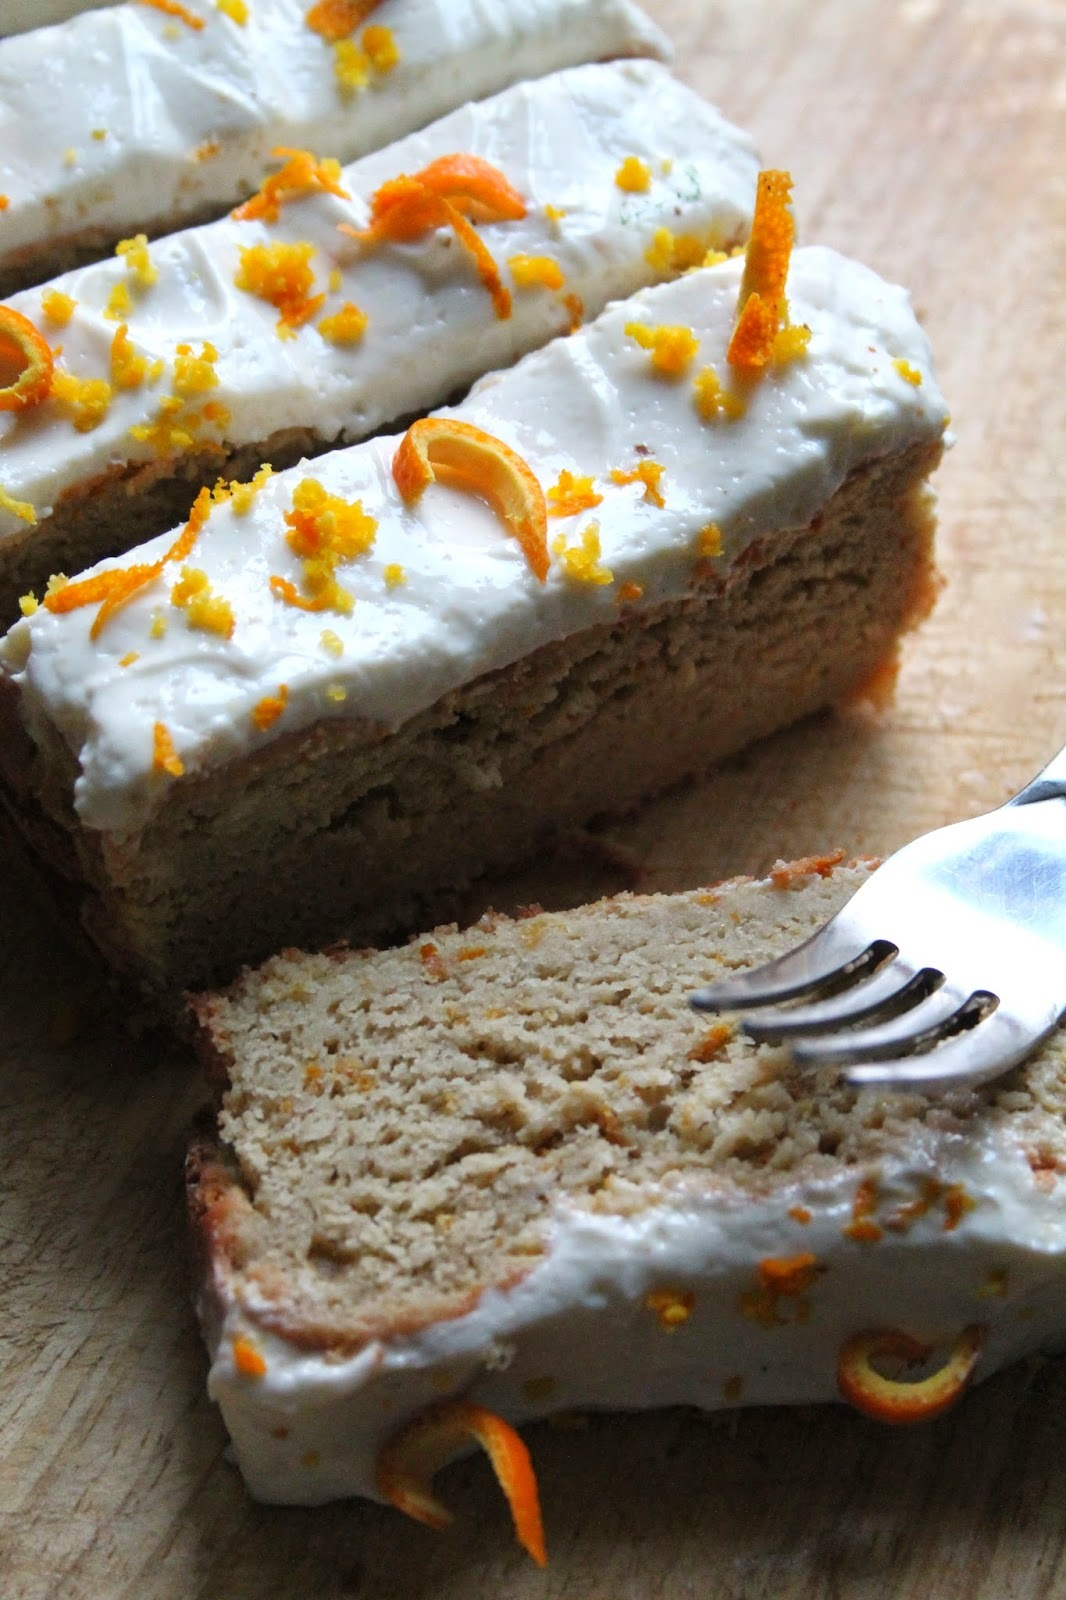 Orange Loaf Cake With Cream Cheese Frosting (Gluten-Free, Low Carb)